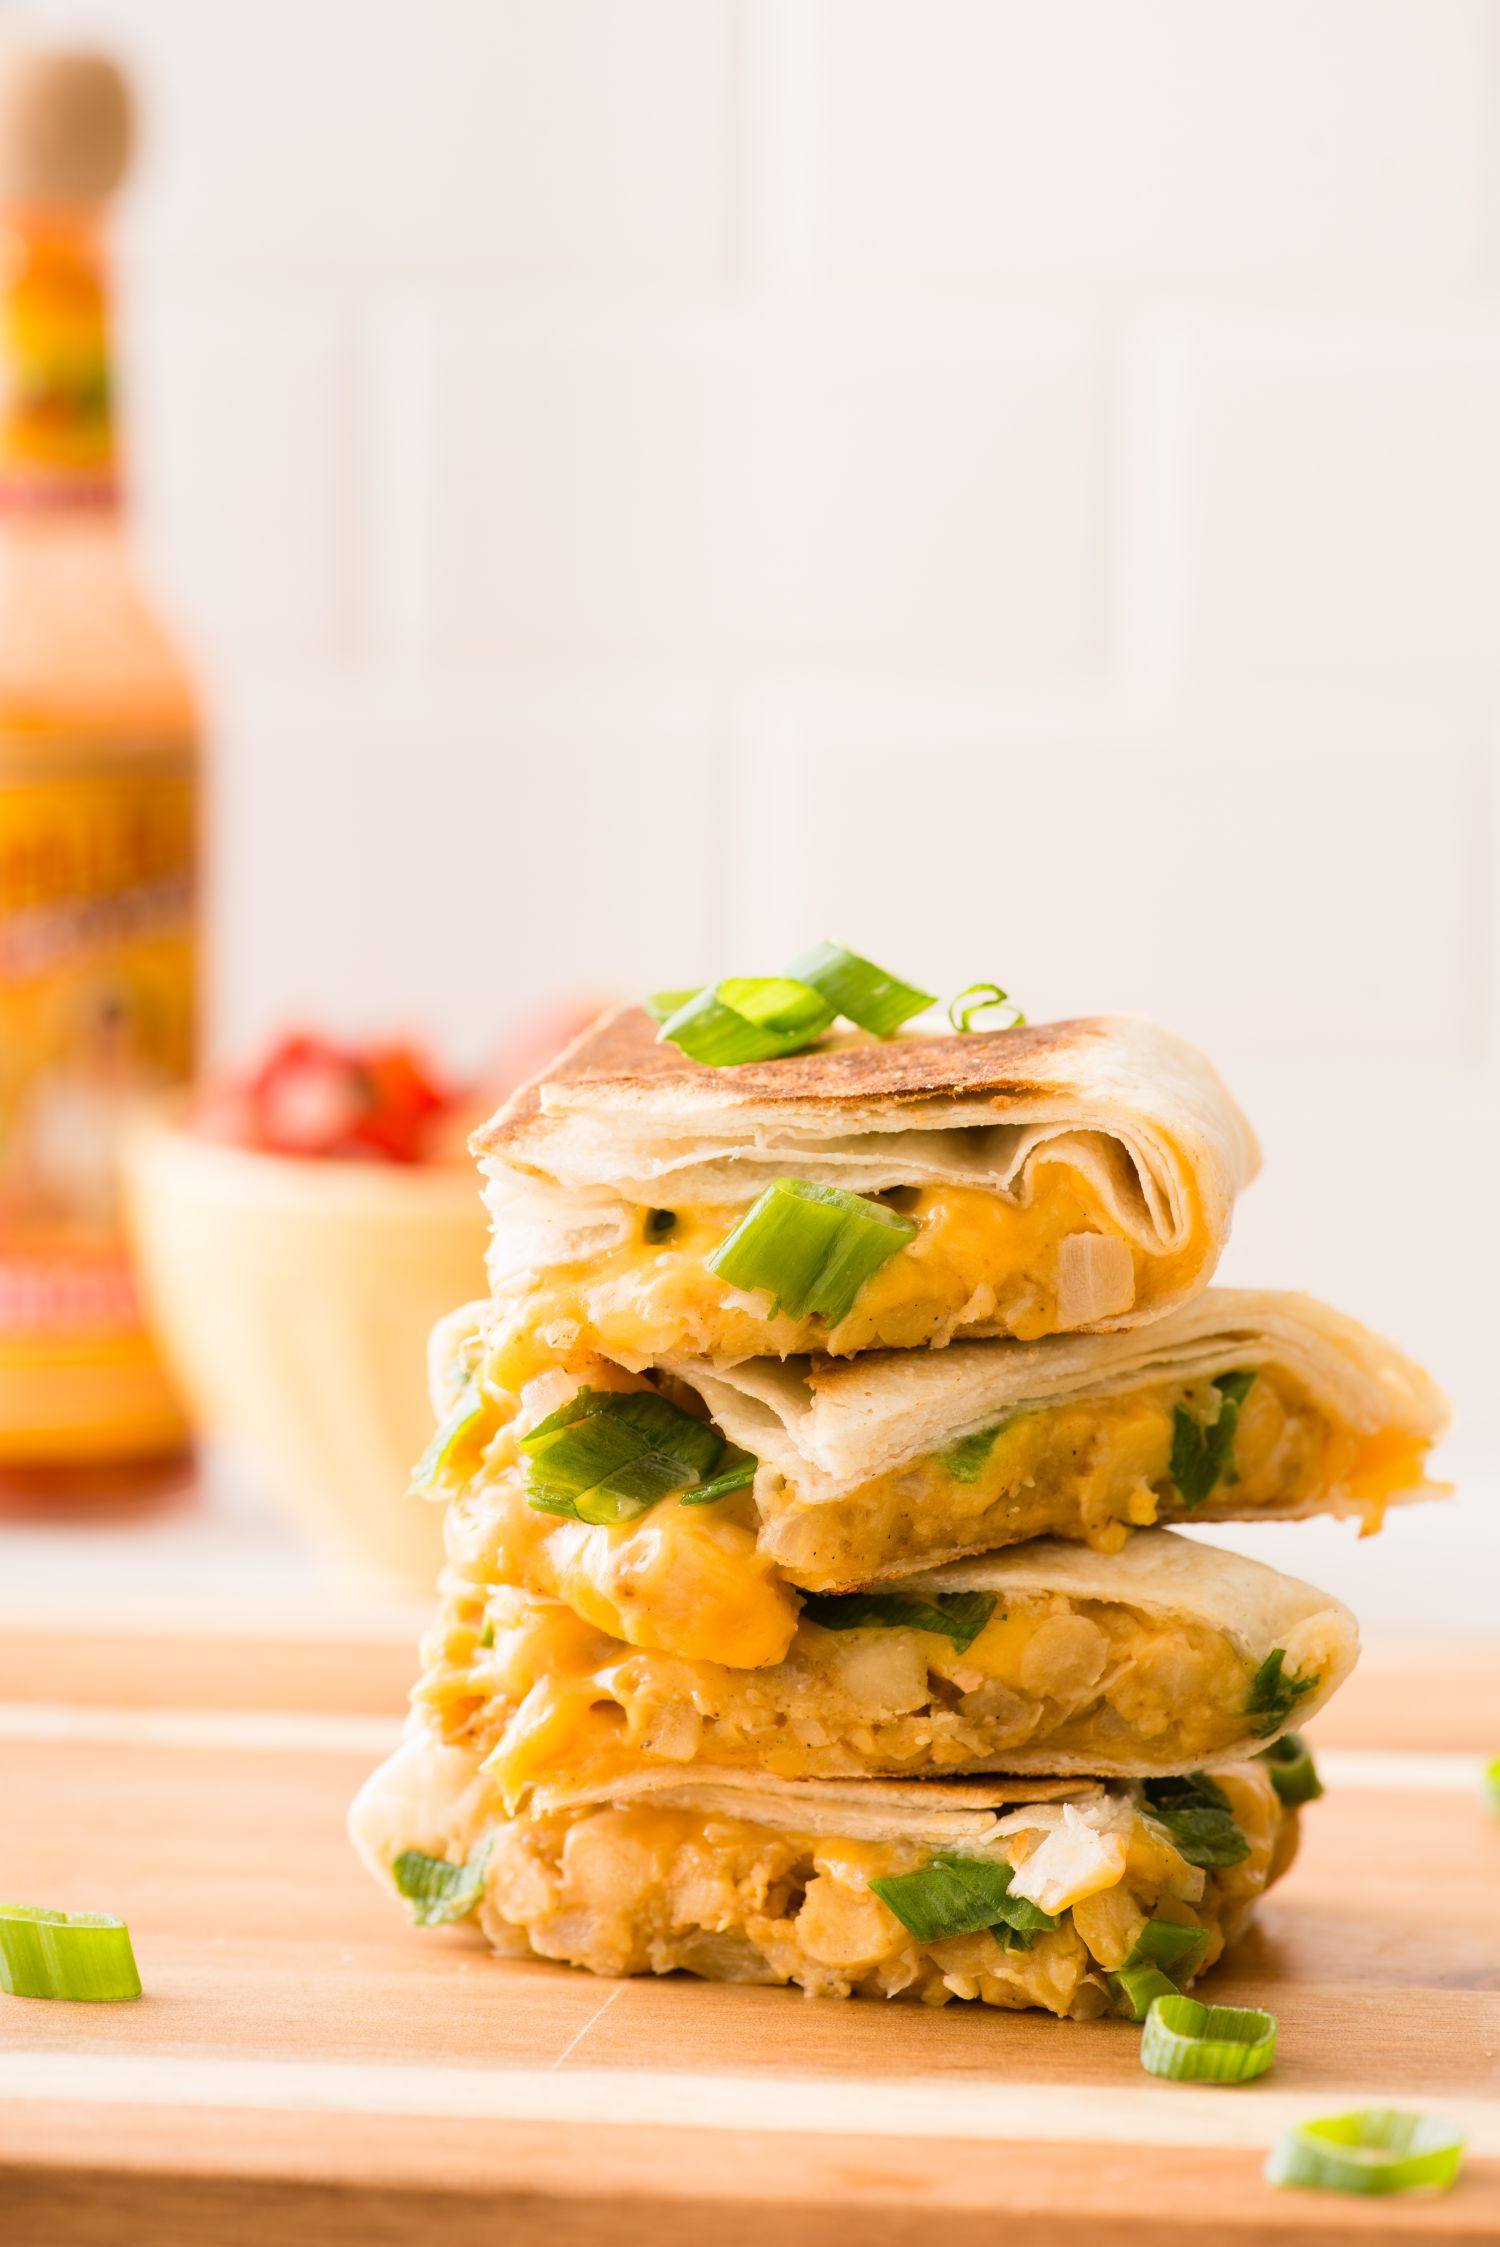 These Chickpea Quesadillas Are the Easiest Make-Ahead Lunch